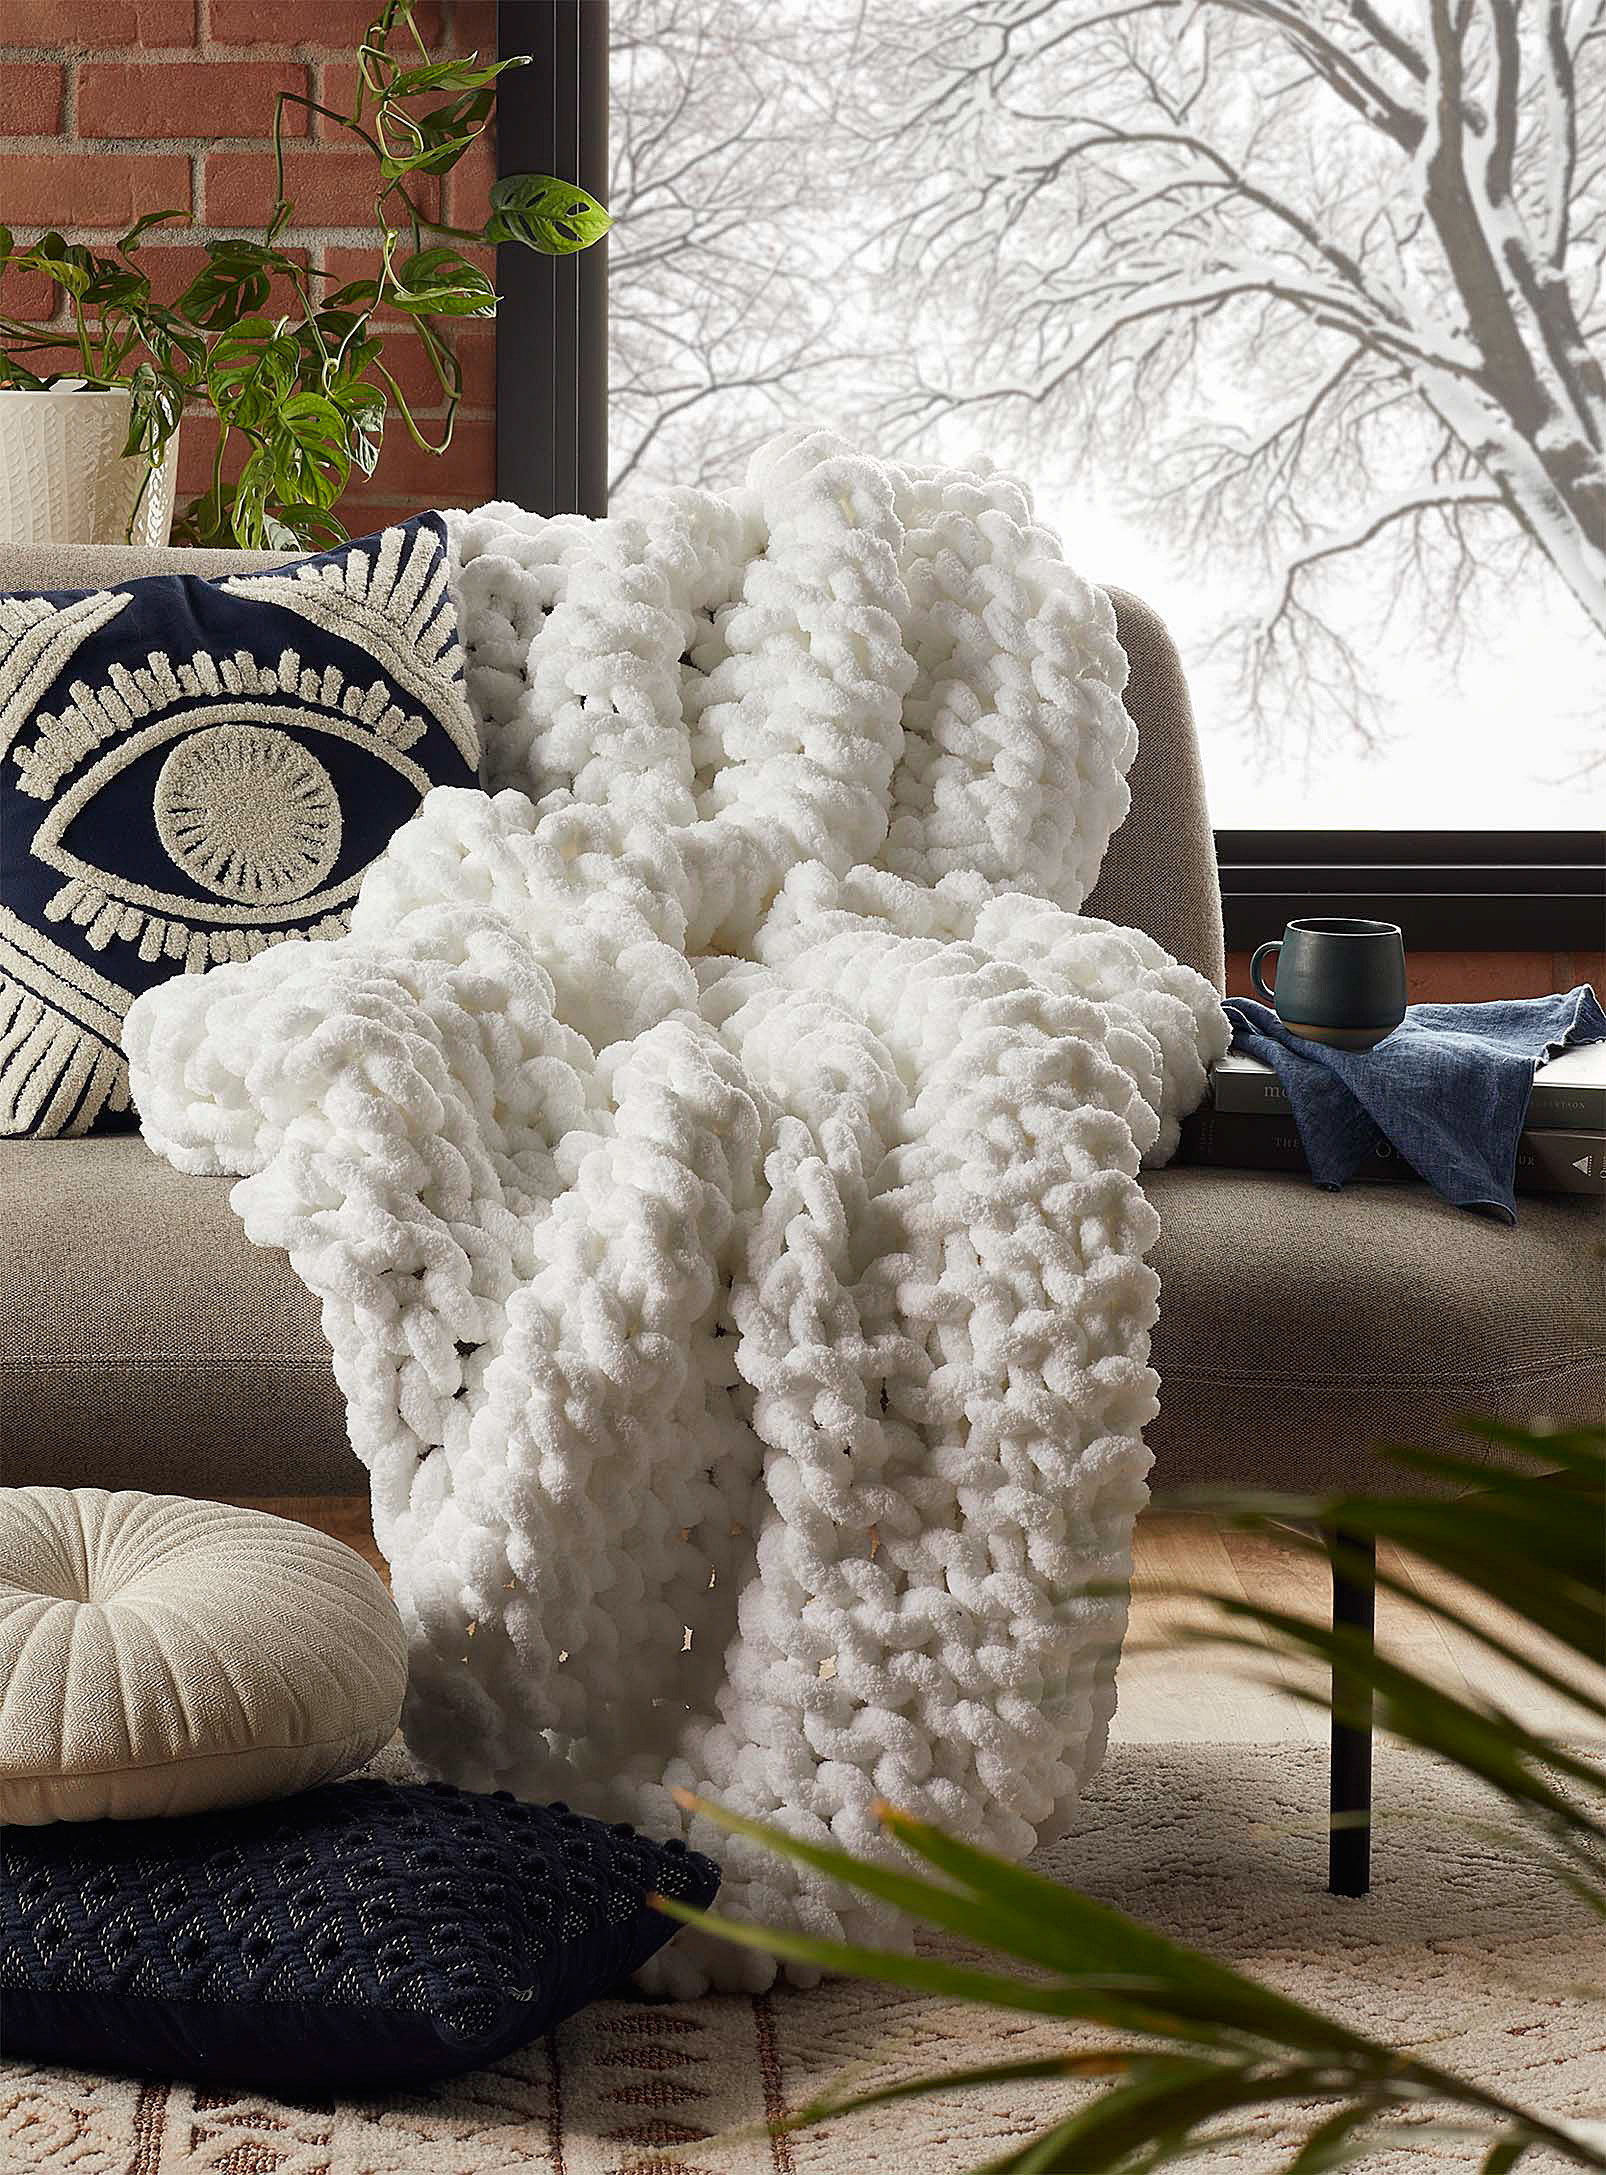 A chunky knit blanket on a chair